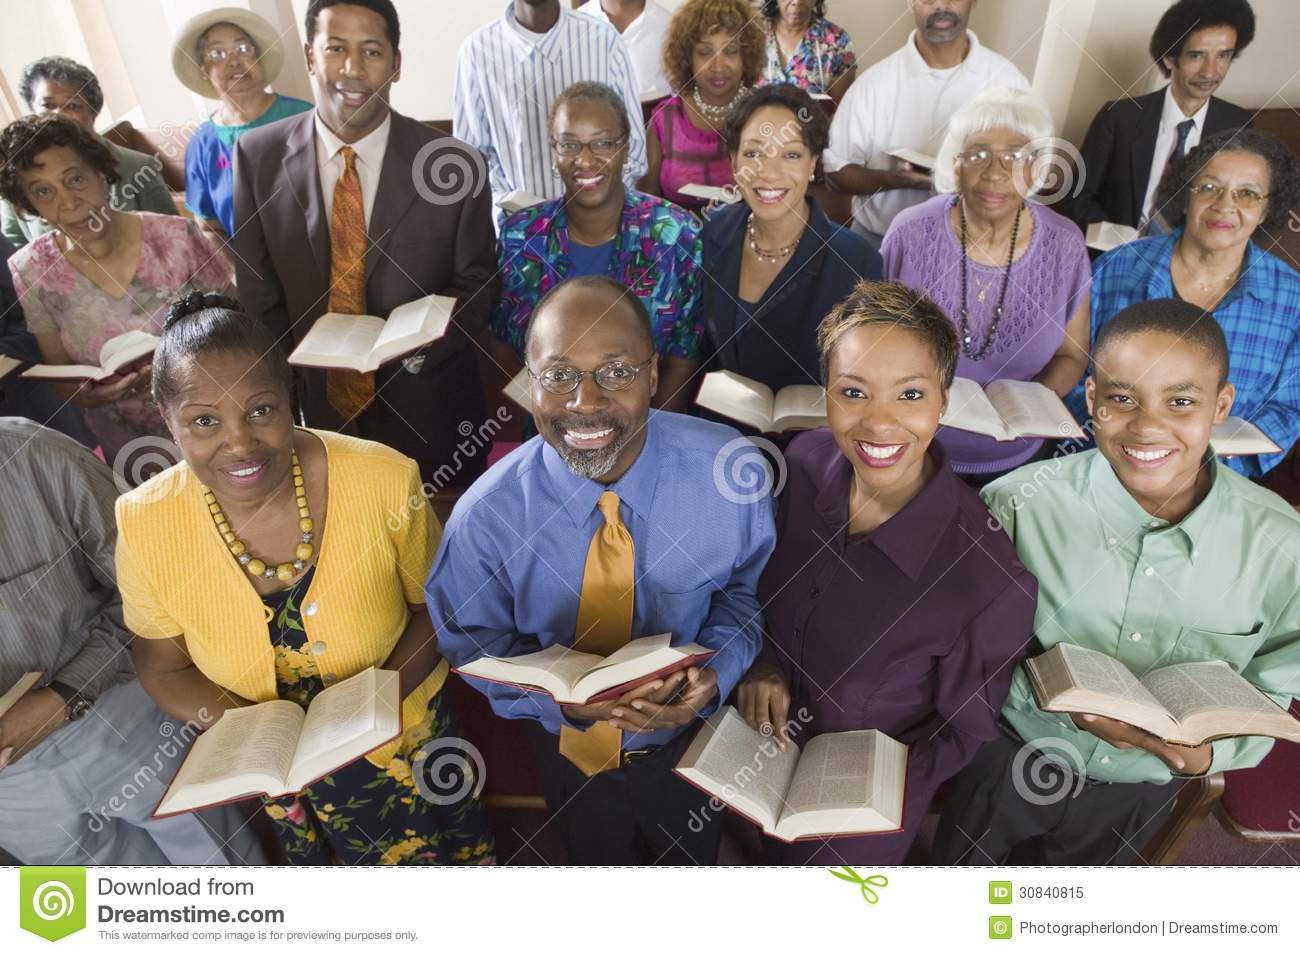 Church congregation sitting on church pews with Bible portrait high angle view